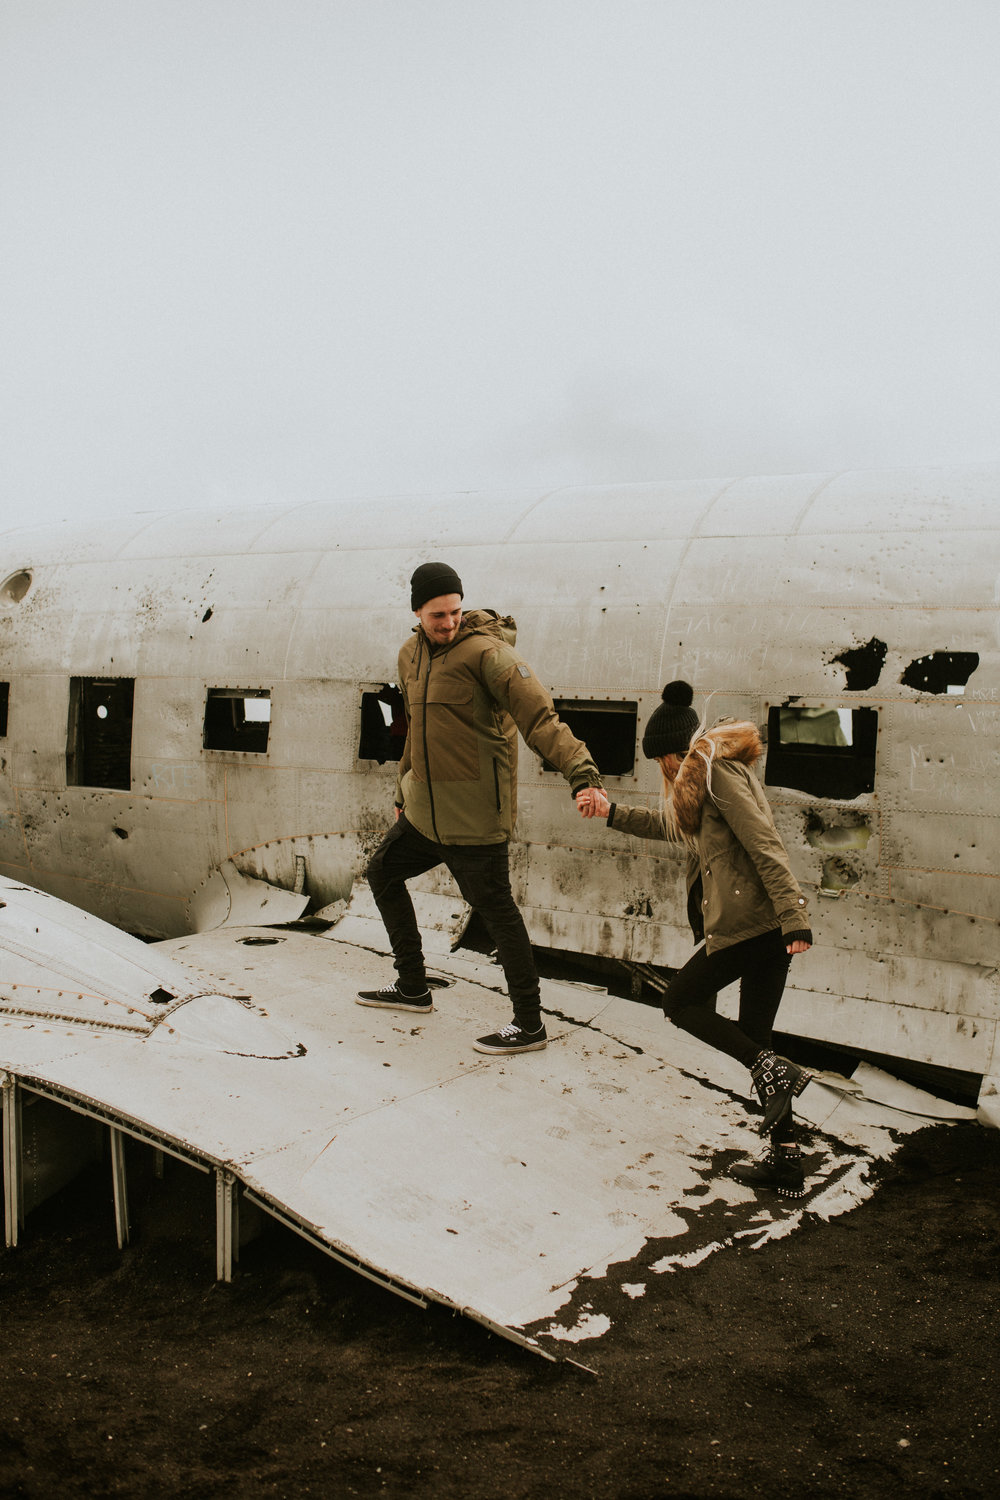 iceland plane crash engagement photographer Breeanna lasher